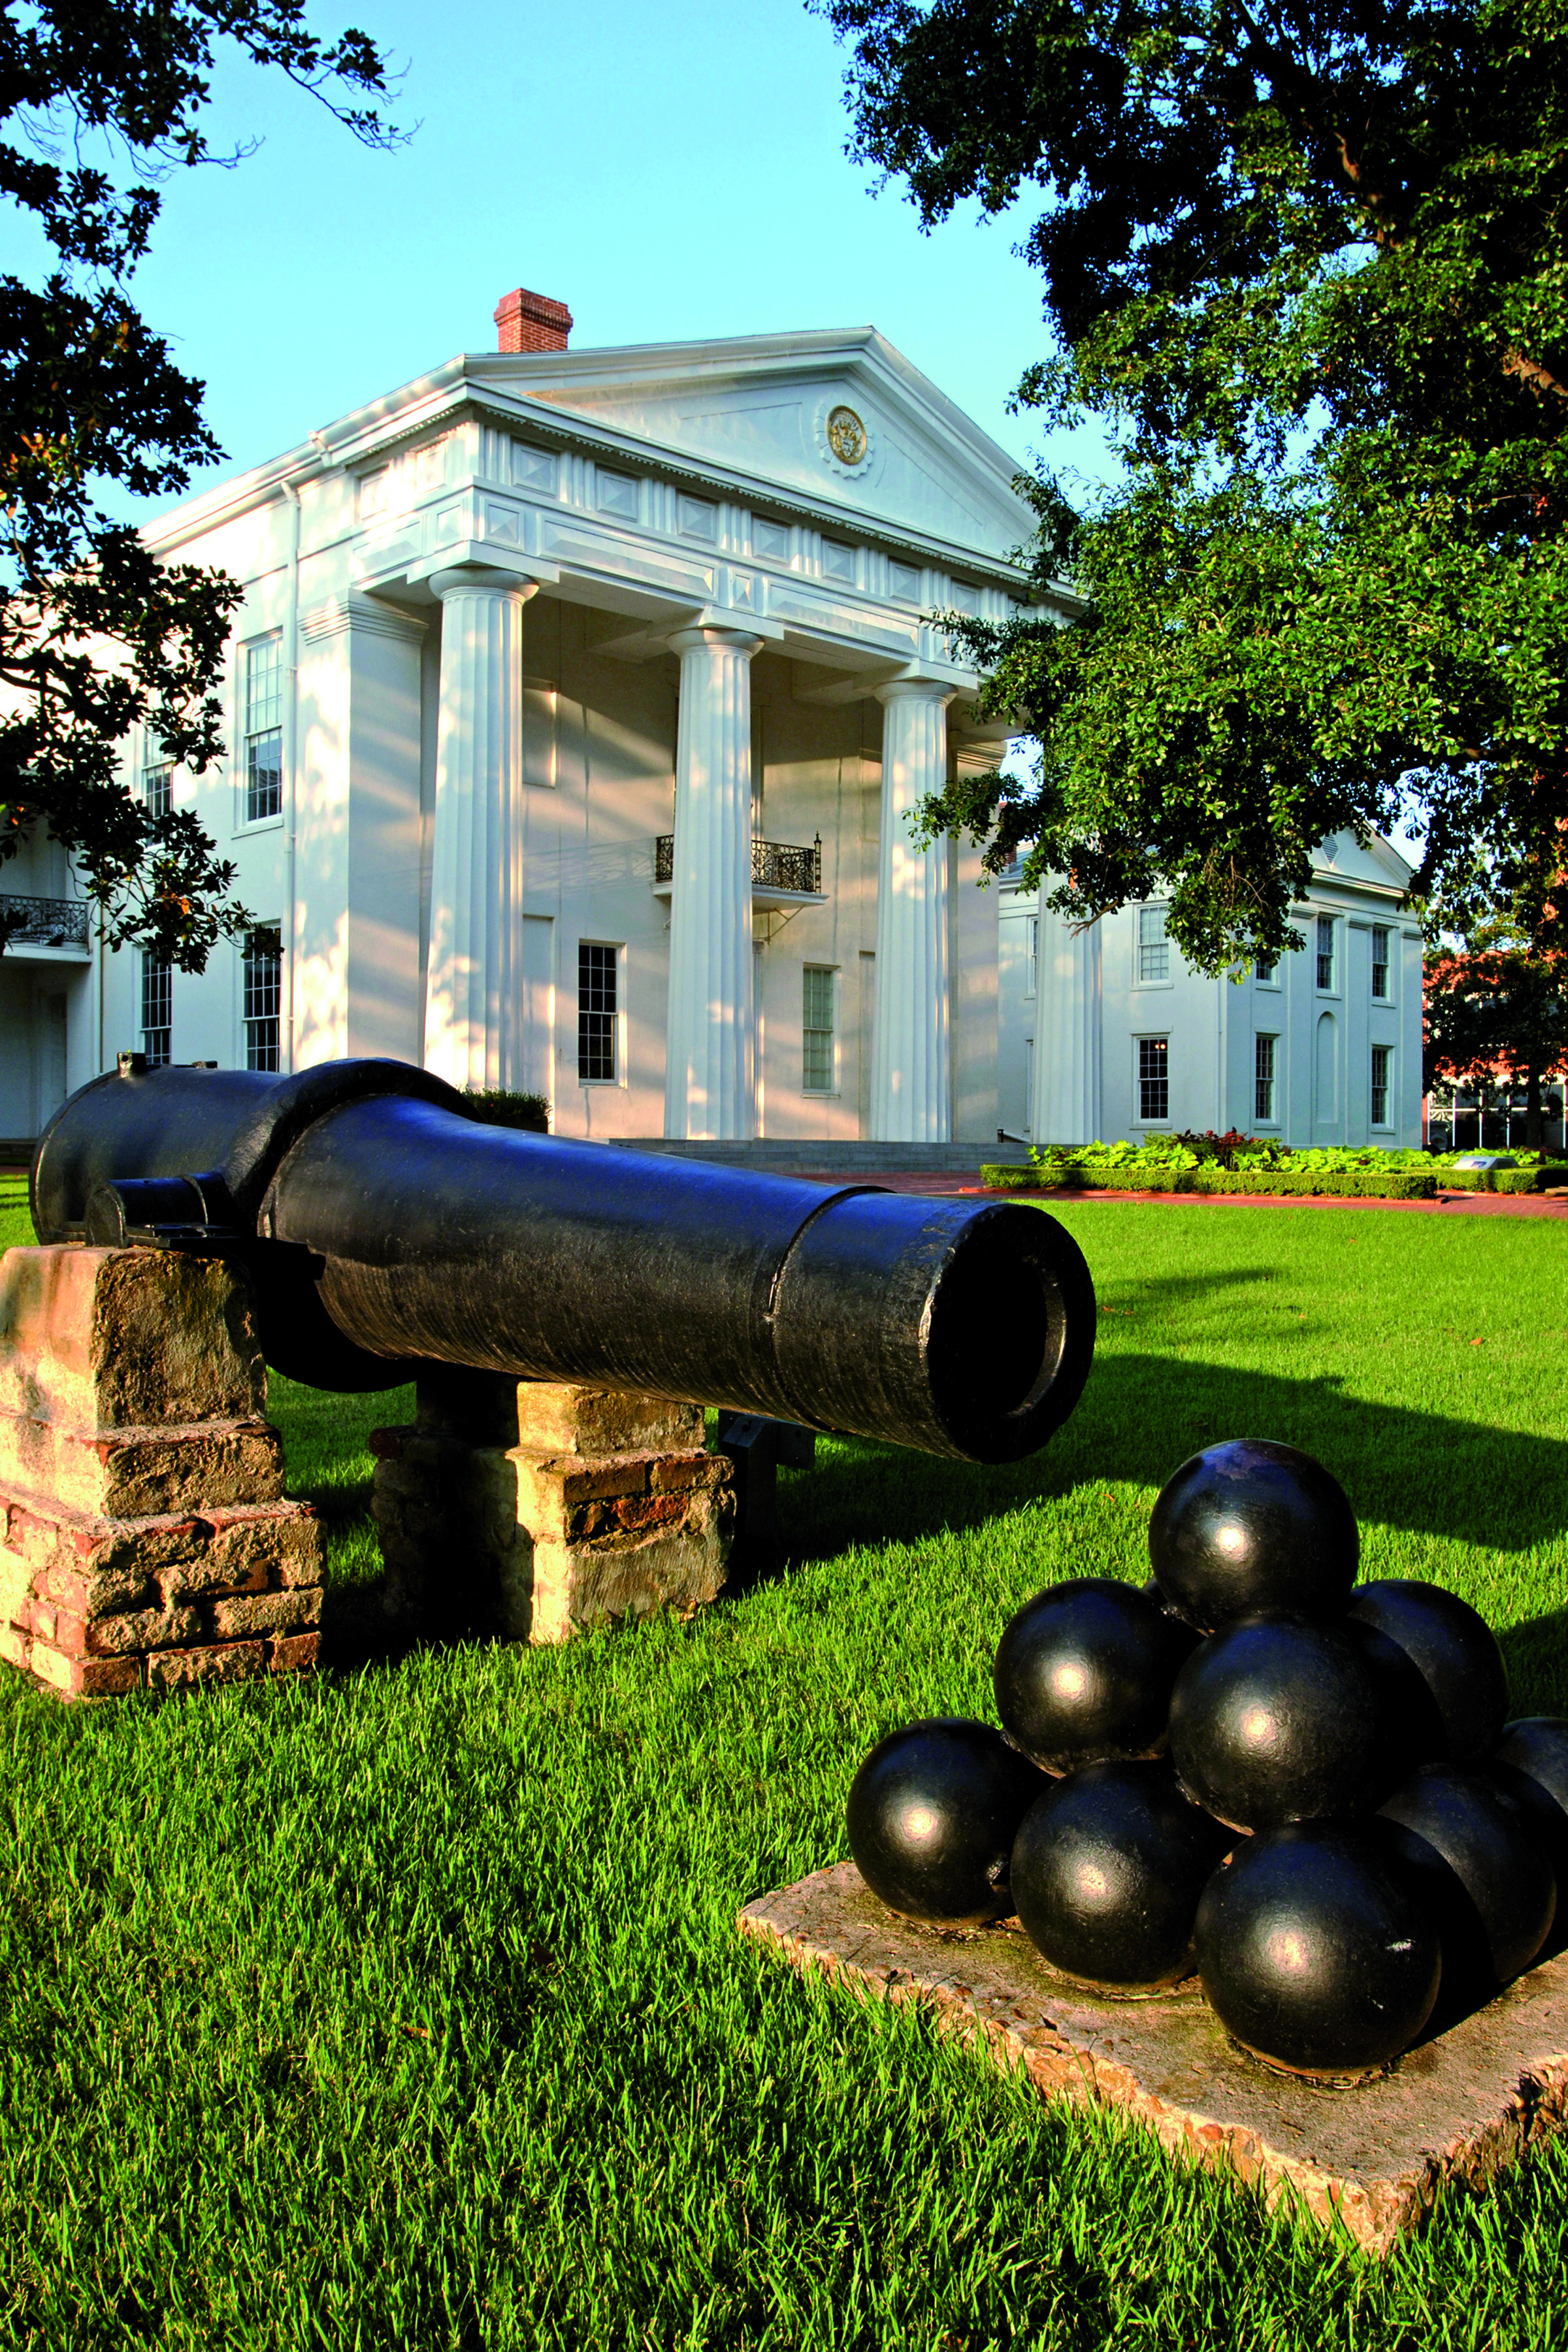 A cannon outside The Old State House